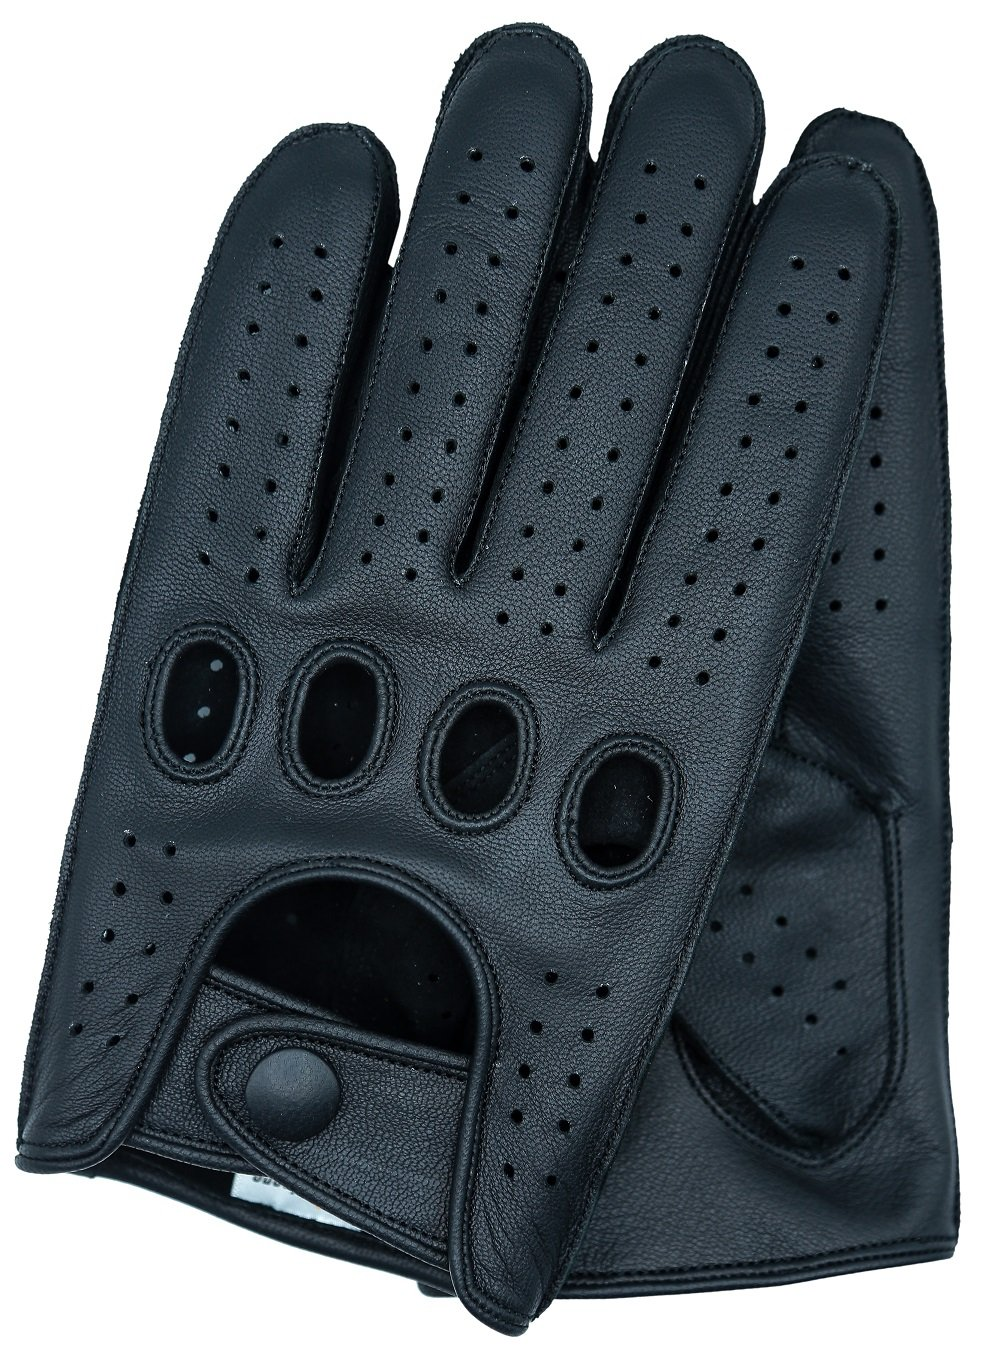 Riparo Men's Reverse Stitched Touchscreen Texting Leather Driving Gloves (Large, Black)